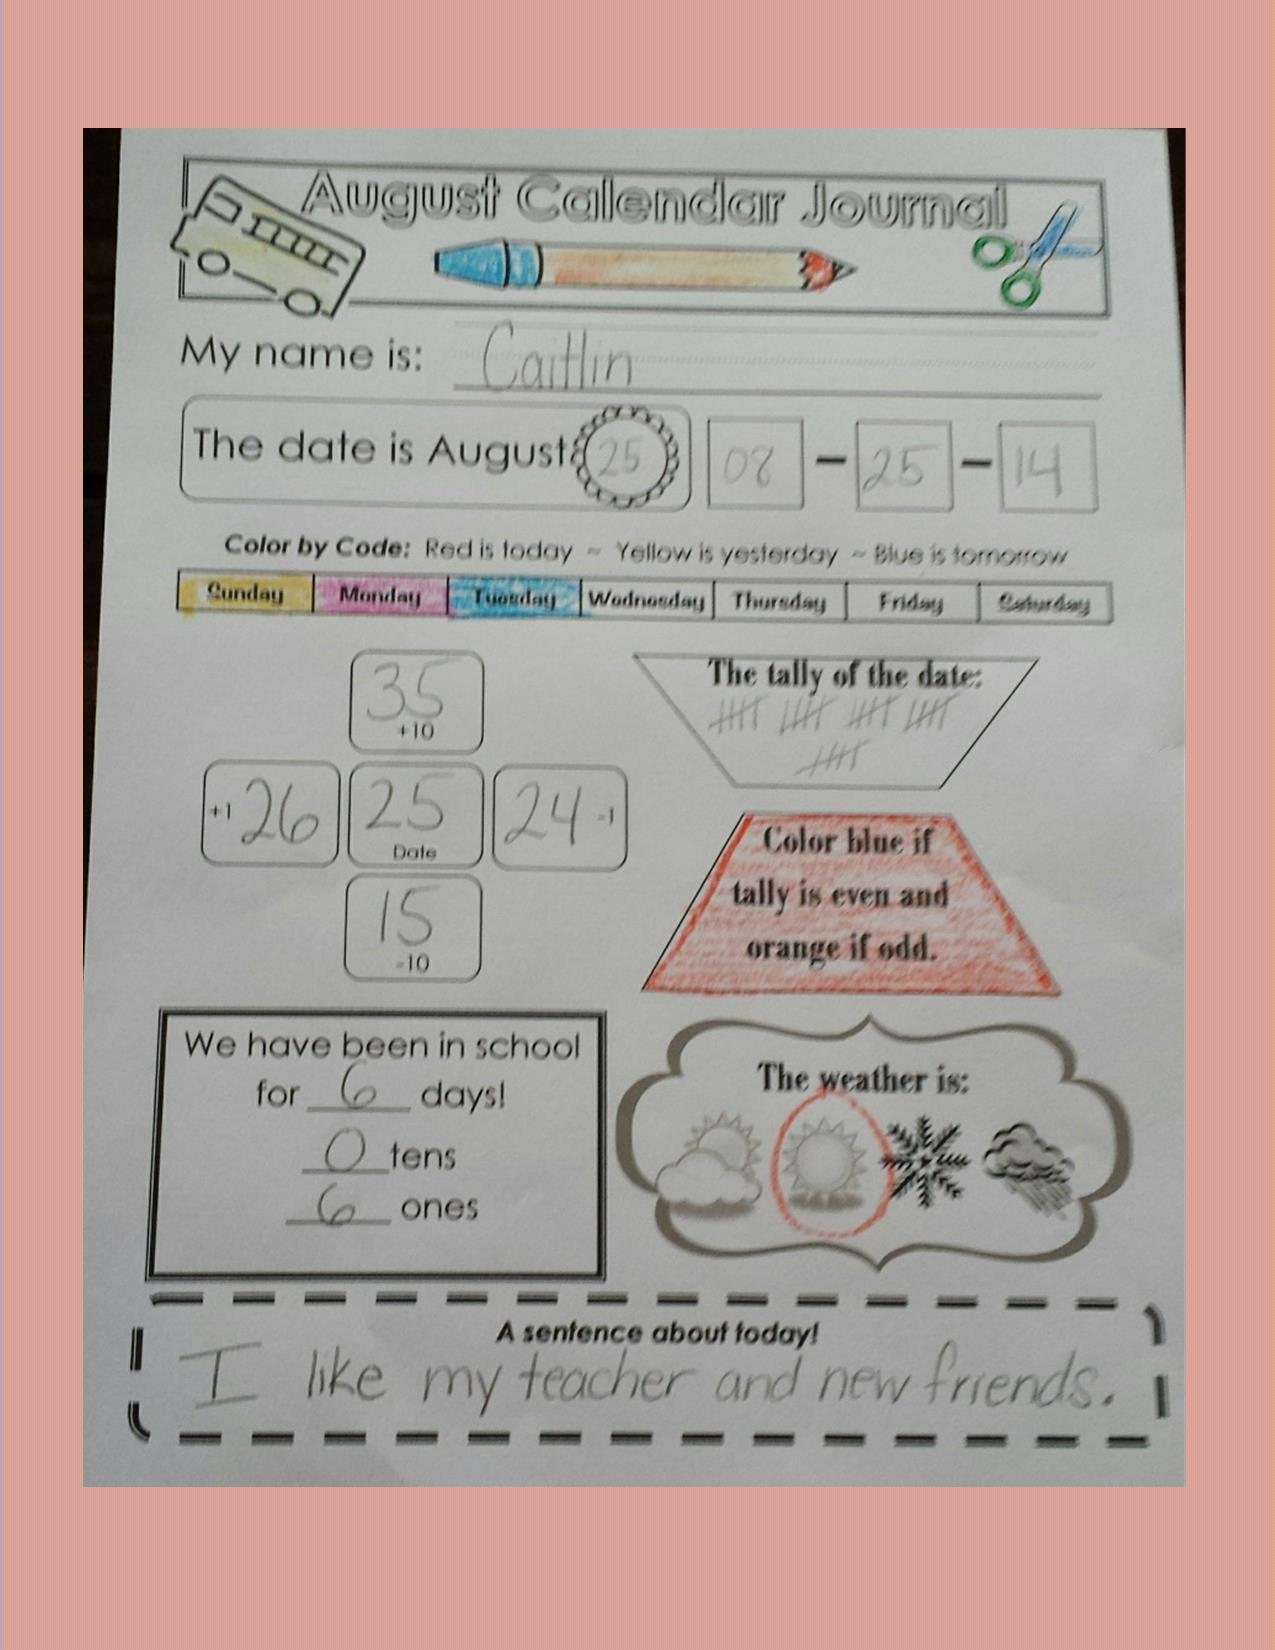 Primary Calendar Ideas, Pictures, And Activities!